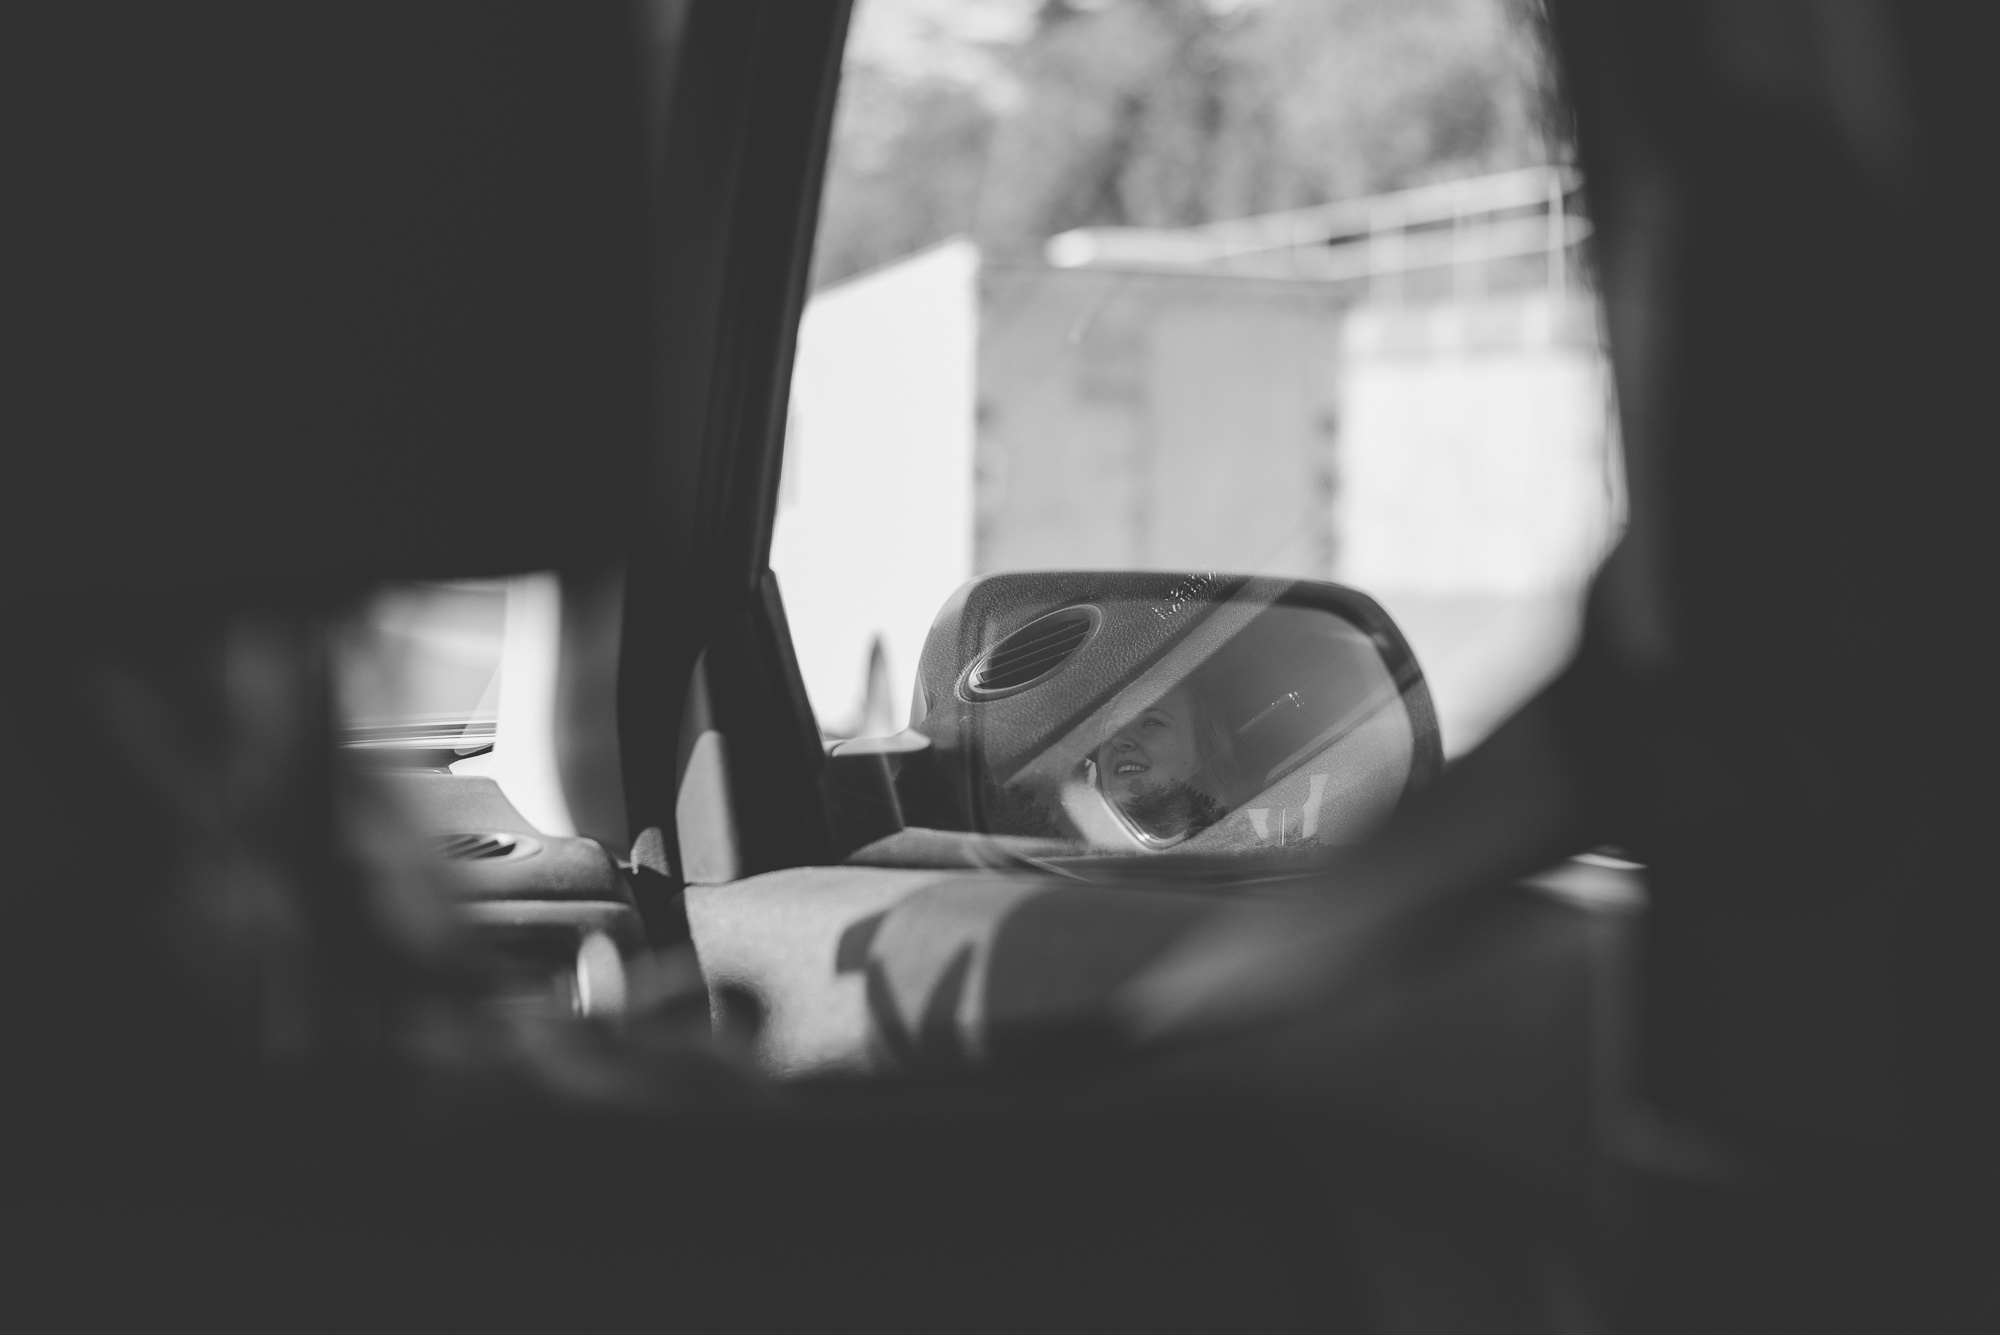 reflection of woman smiling in side mirror of car